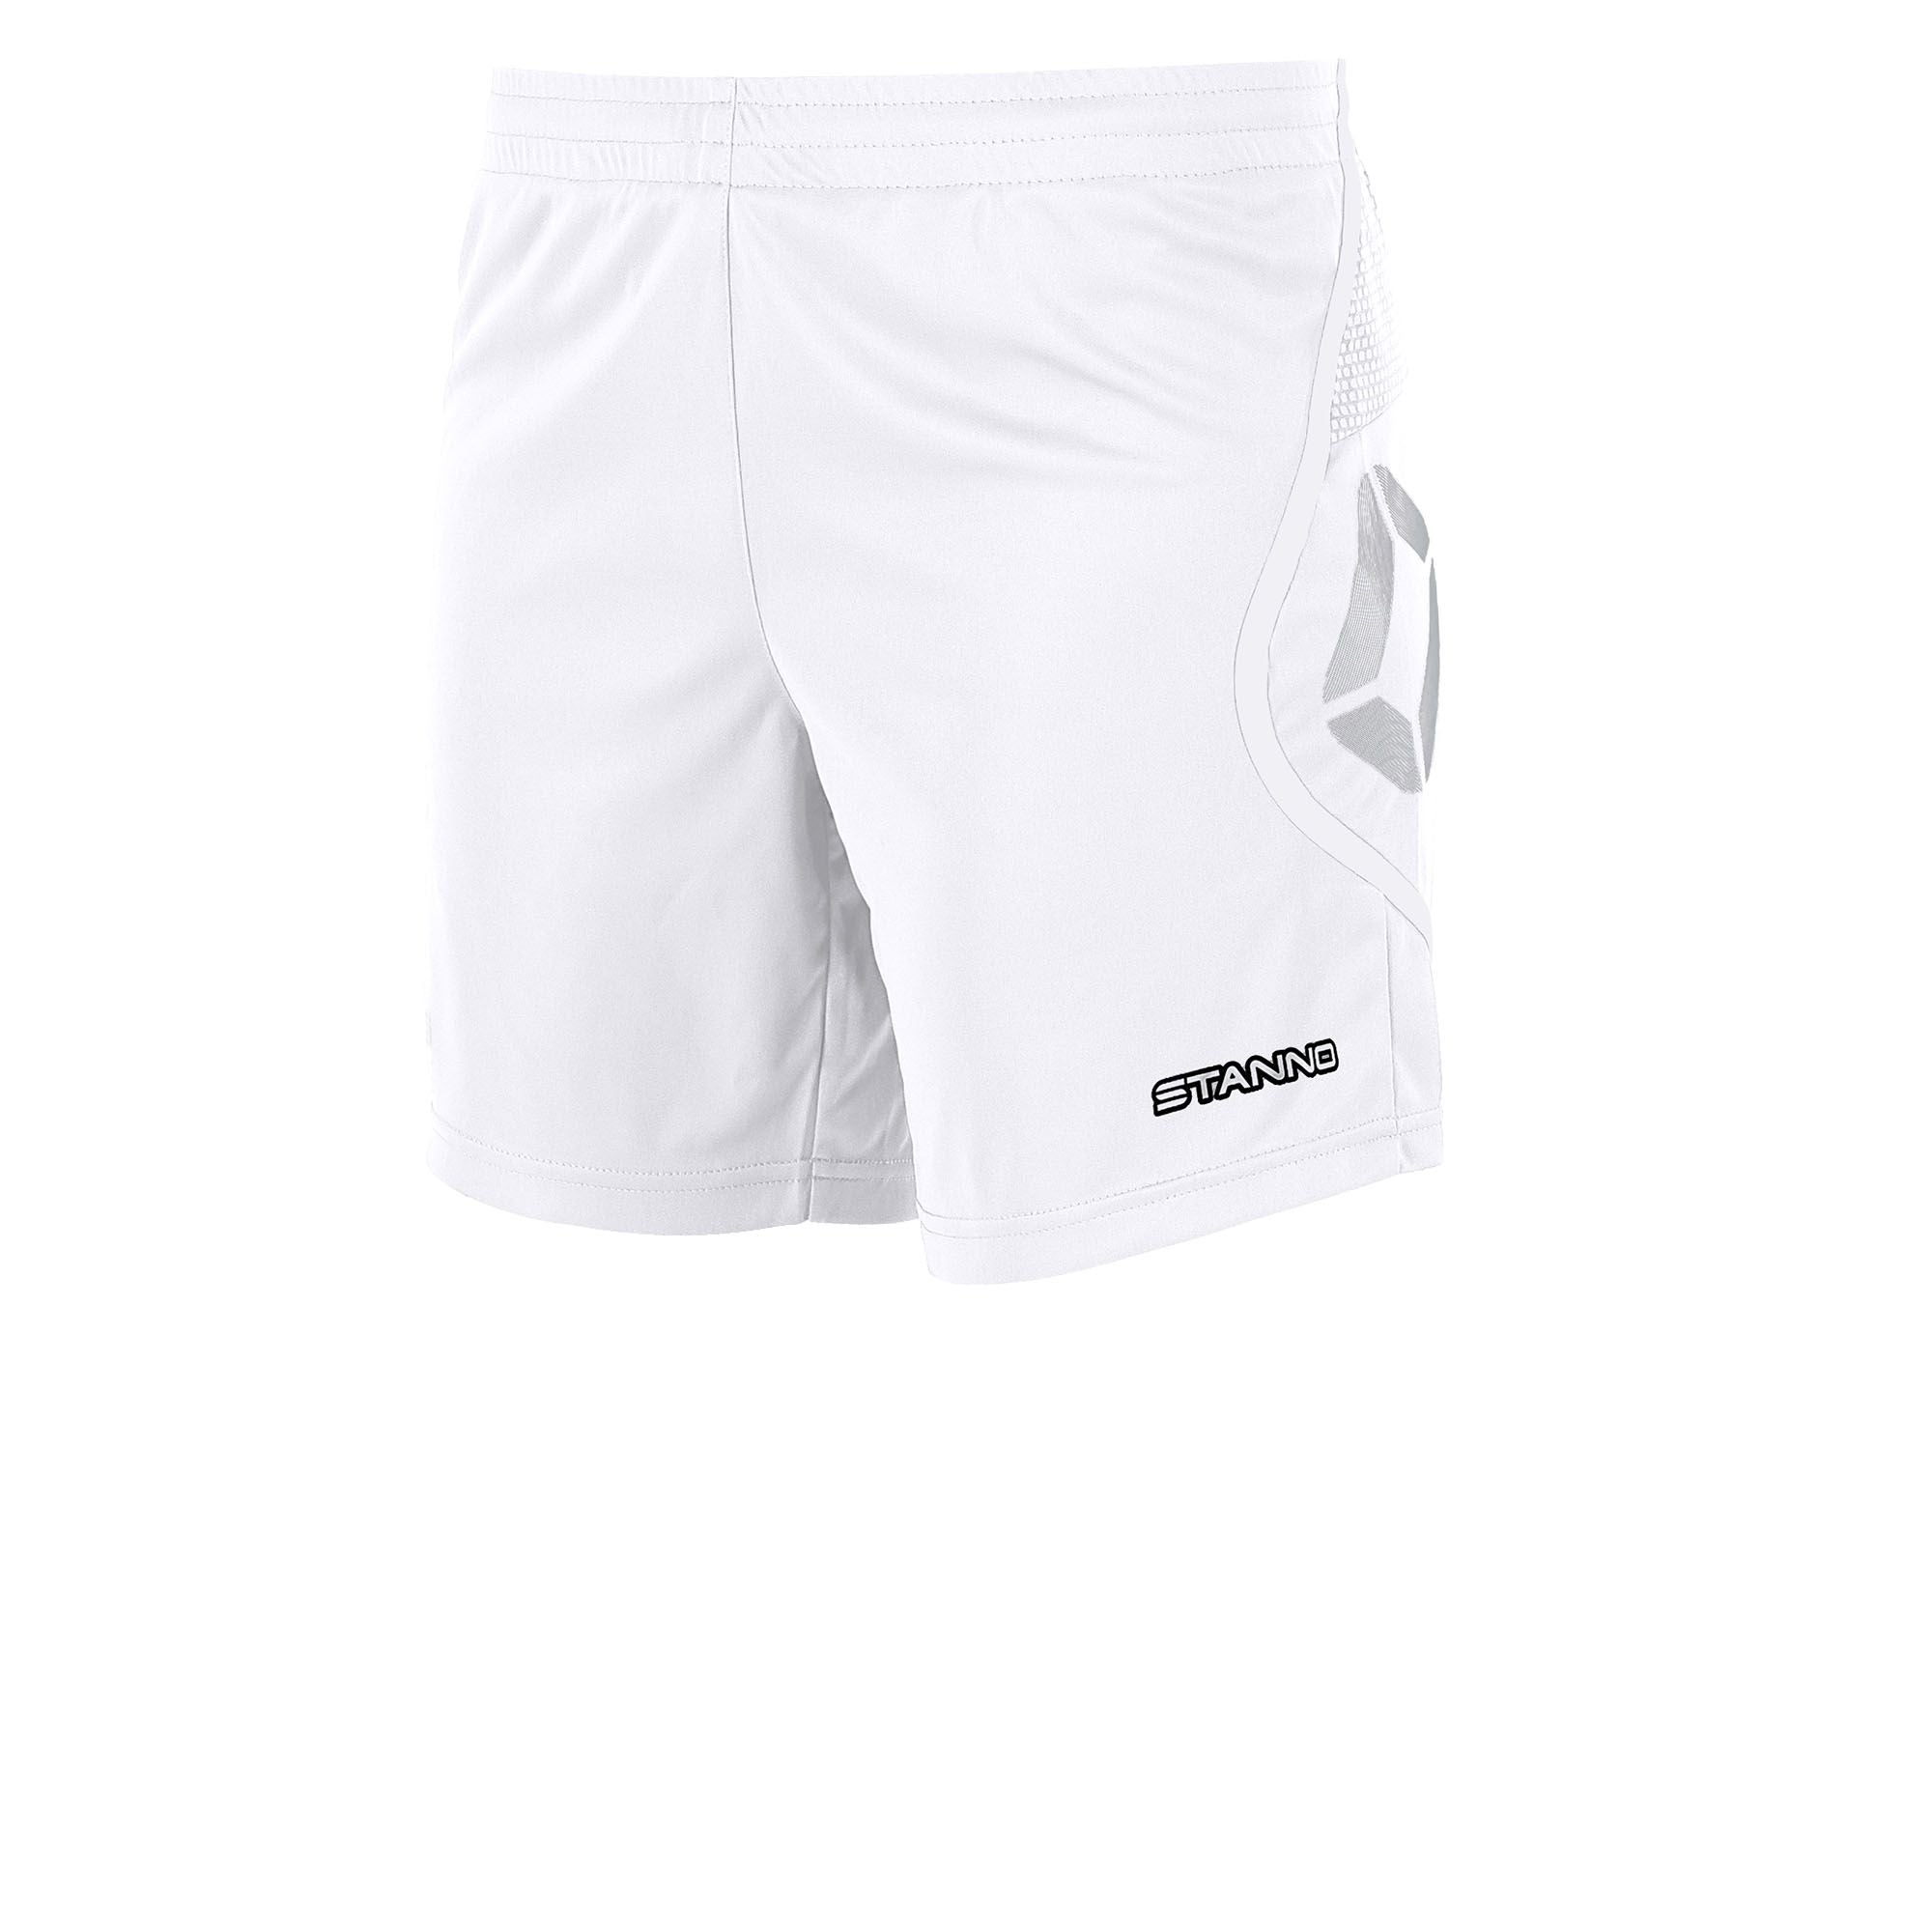 Stanno Pisa Shorts Ladies - White